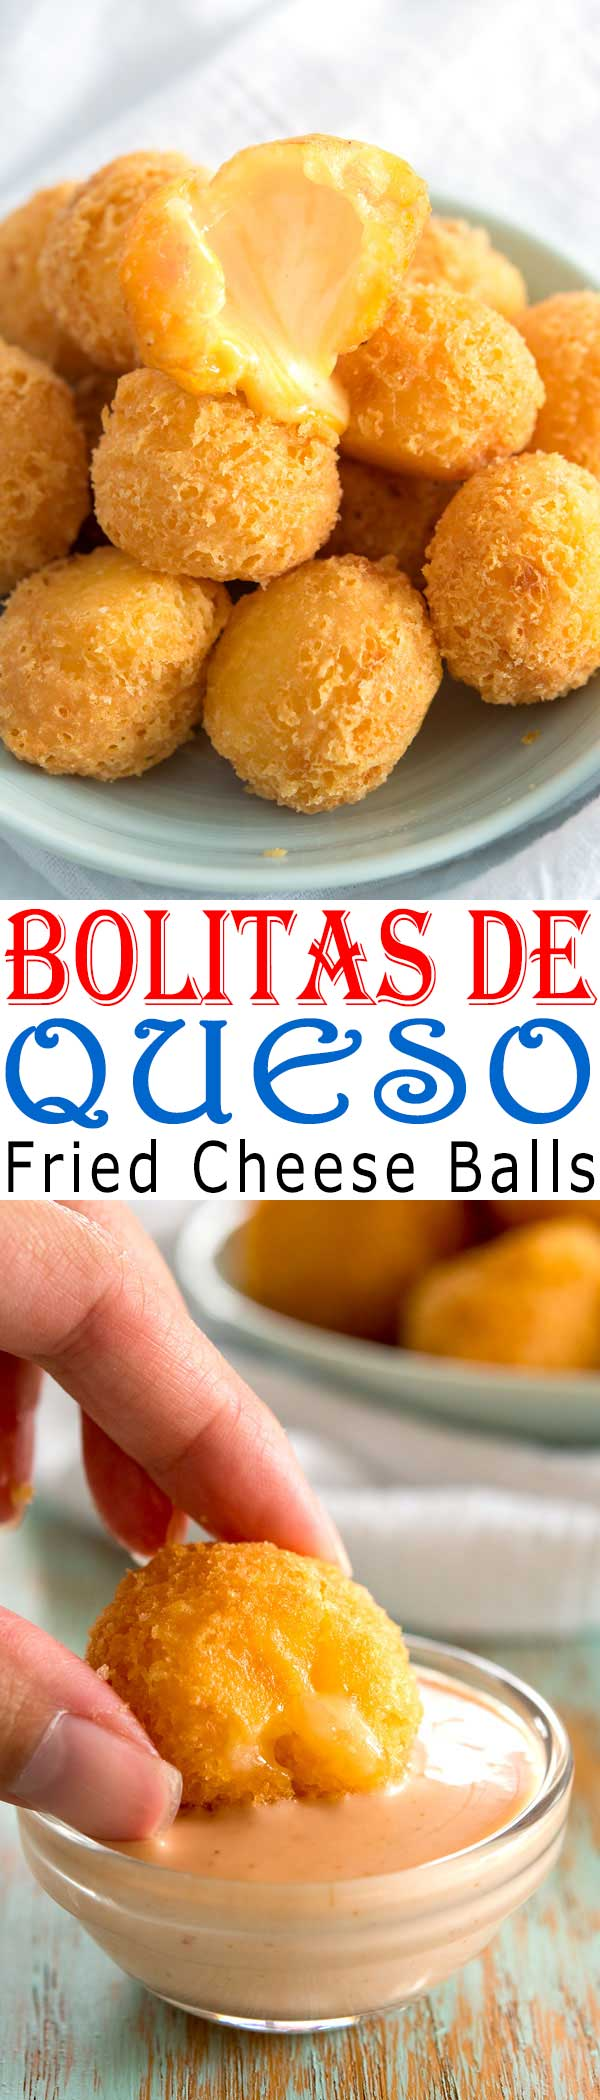 Bolitas de Queso (deep fried cheese balls). Easy, cheesy 3-ingredient appetizer recipe from Puerto Rico! #appetizer #superbowl #cheese #easyrecipe